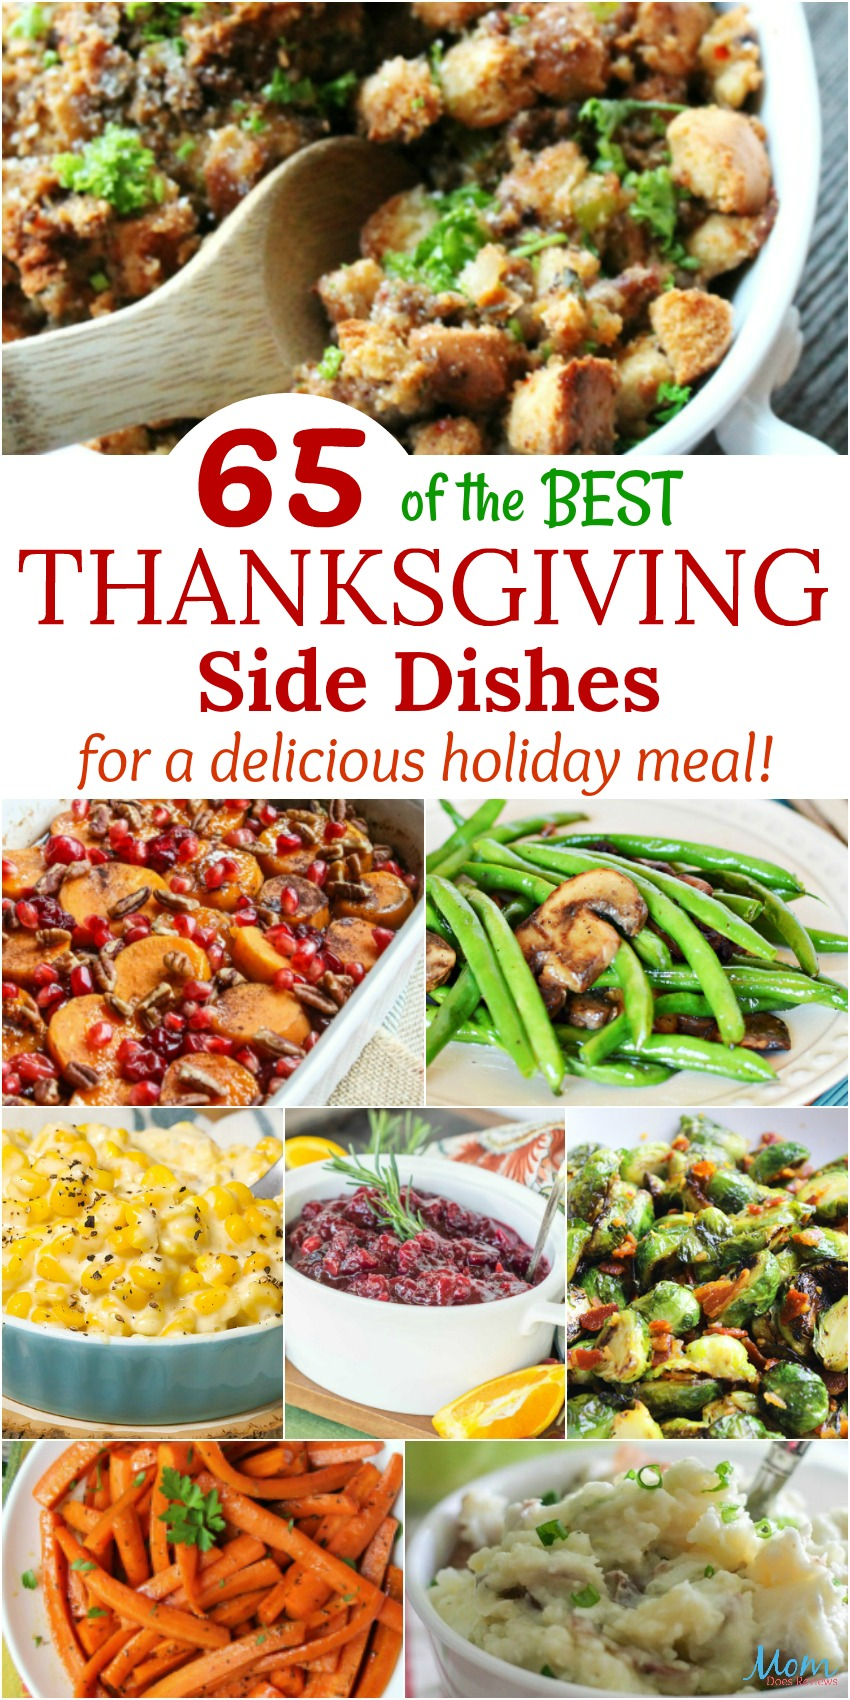 65 Best Images About Tarot On Pinterest: 65 Best Thanksgiving Side Dishes For A Delicious Holiday